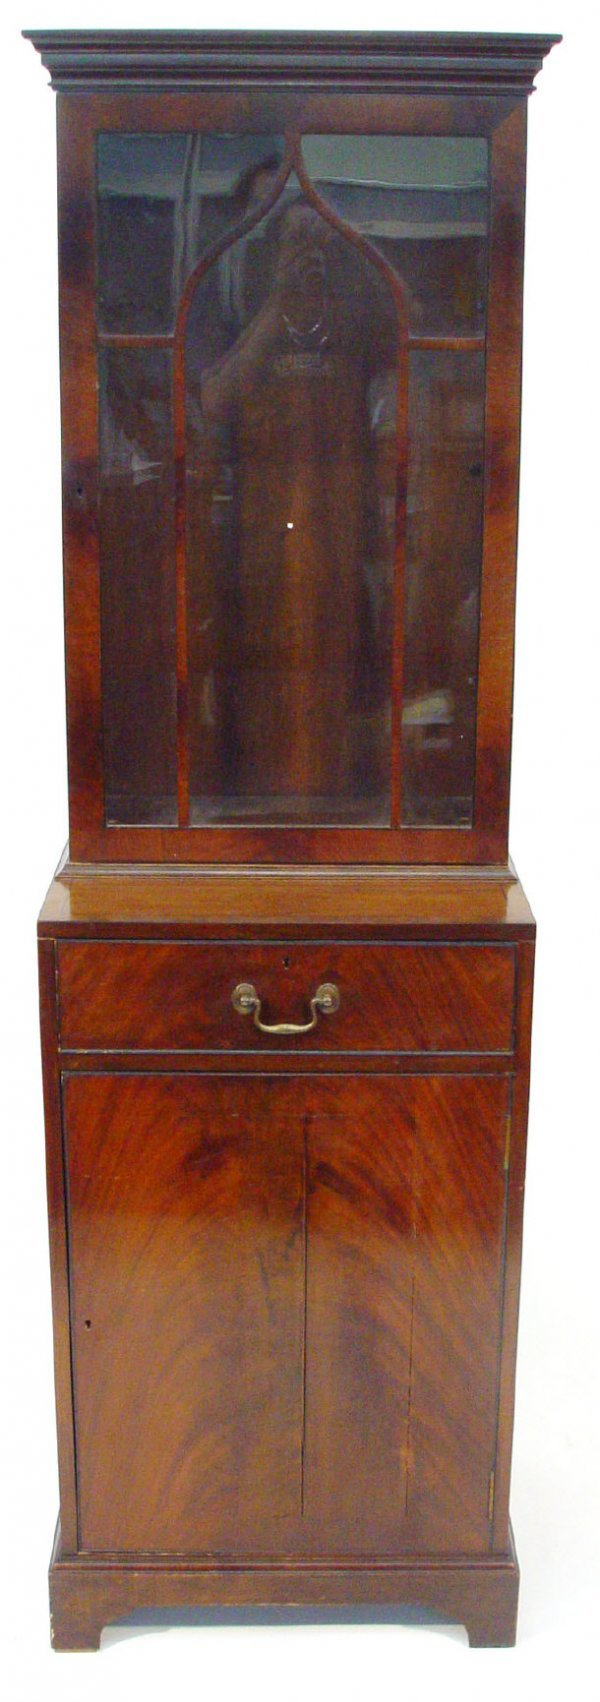 9: Mahogany pier cabinet, the moulded cornice above a g